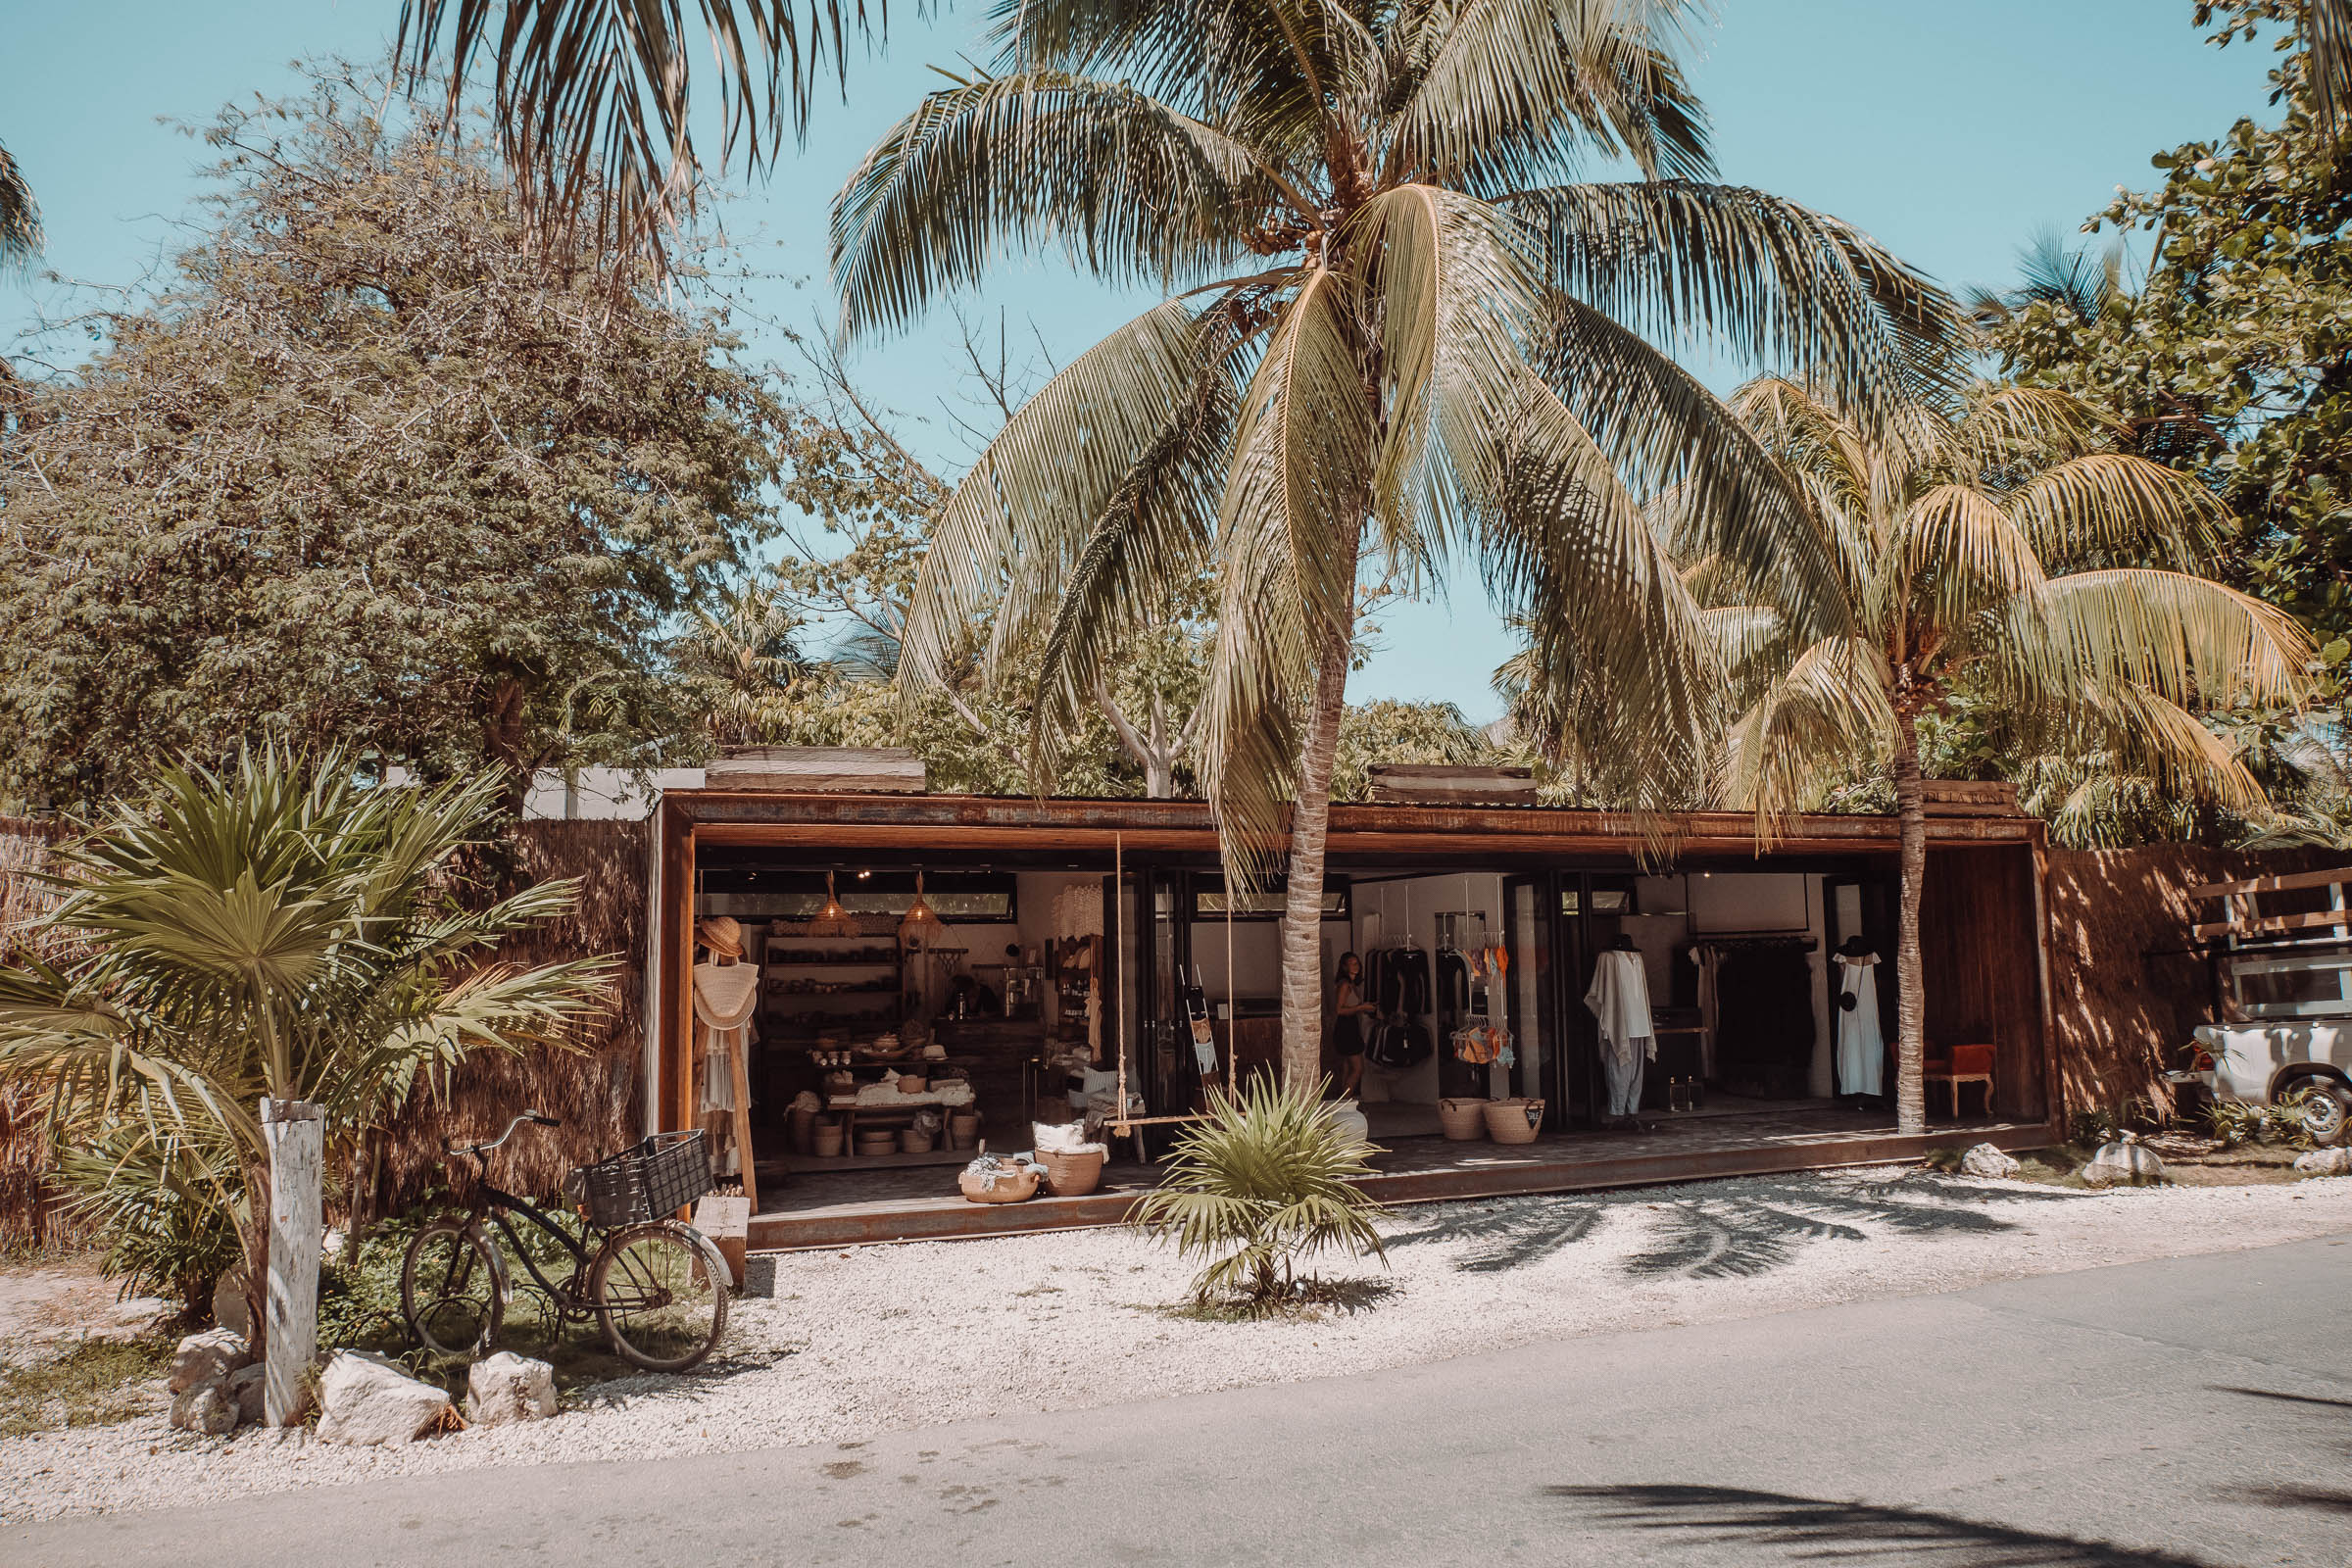 Chacon Images_Mexico2019_Web-65.jpg